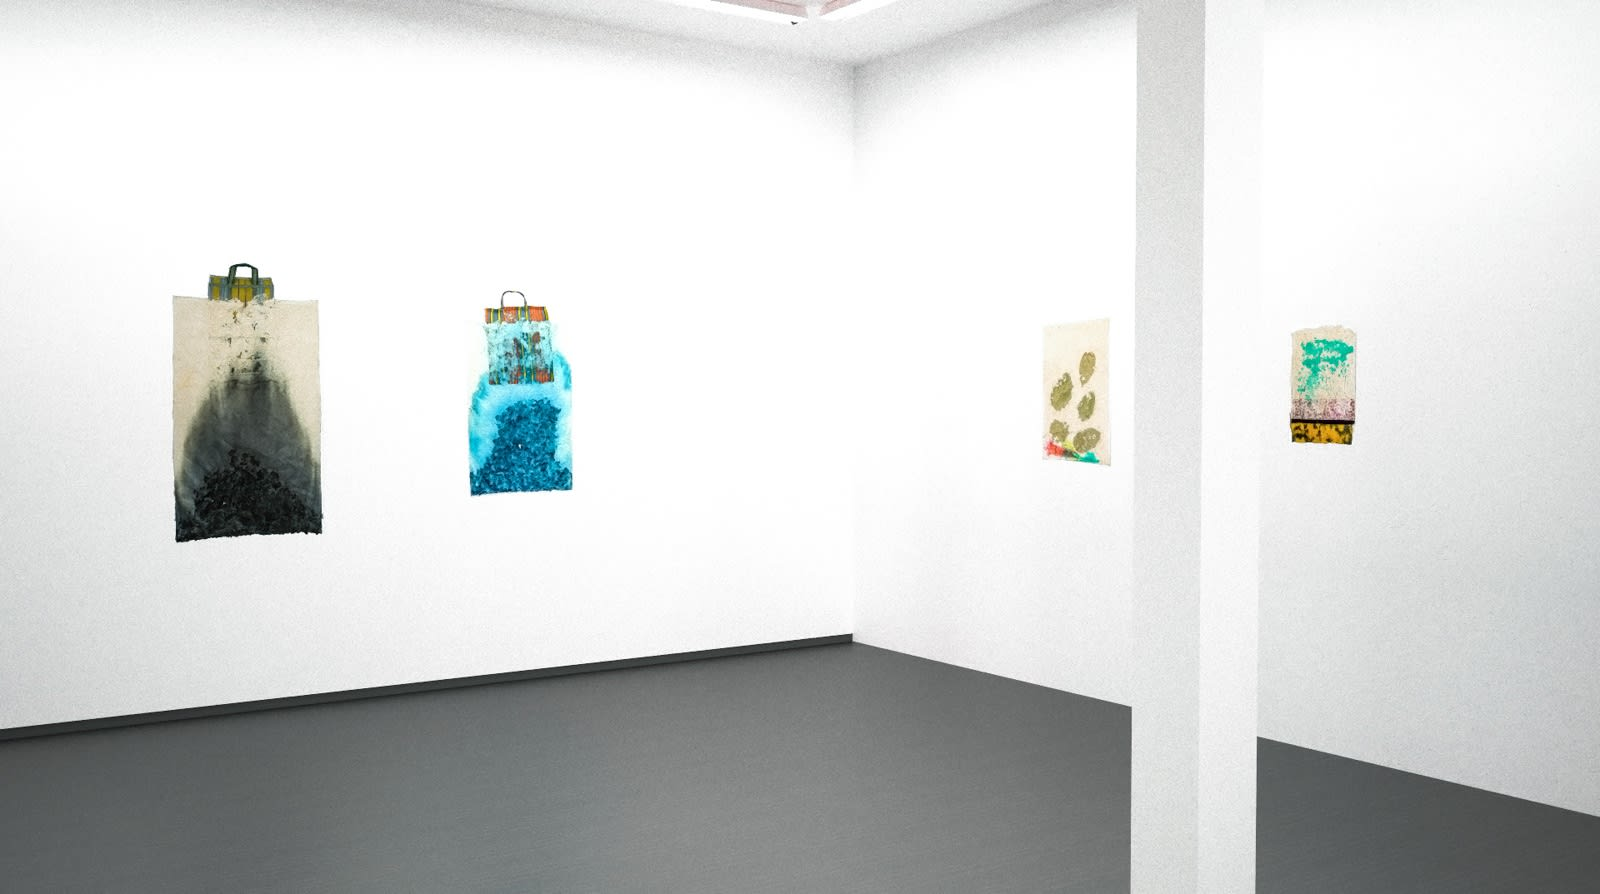 Installation view, Jessica Stockholder: As Glue, Material & Surface: Paper Works (Virtual exhibition), 2020, Kavi Gupta | Kathmandu Projects